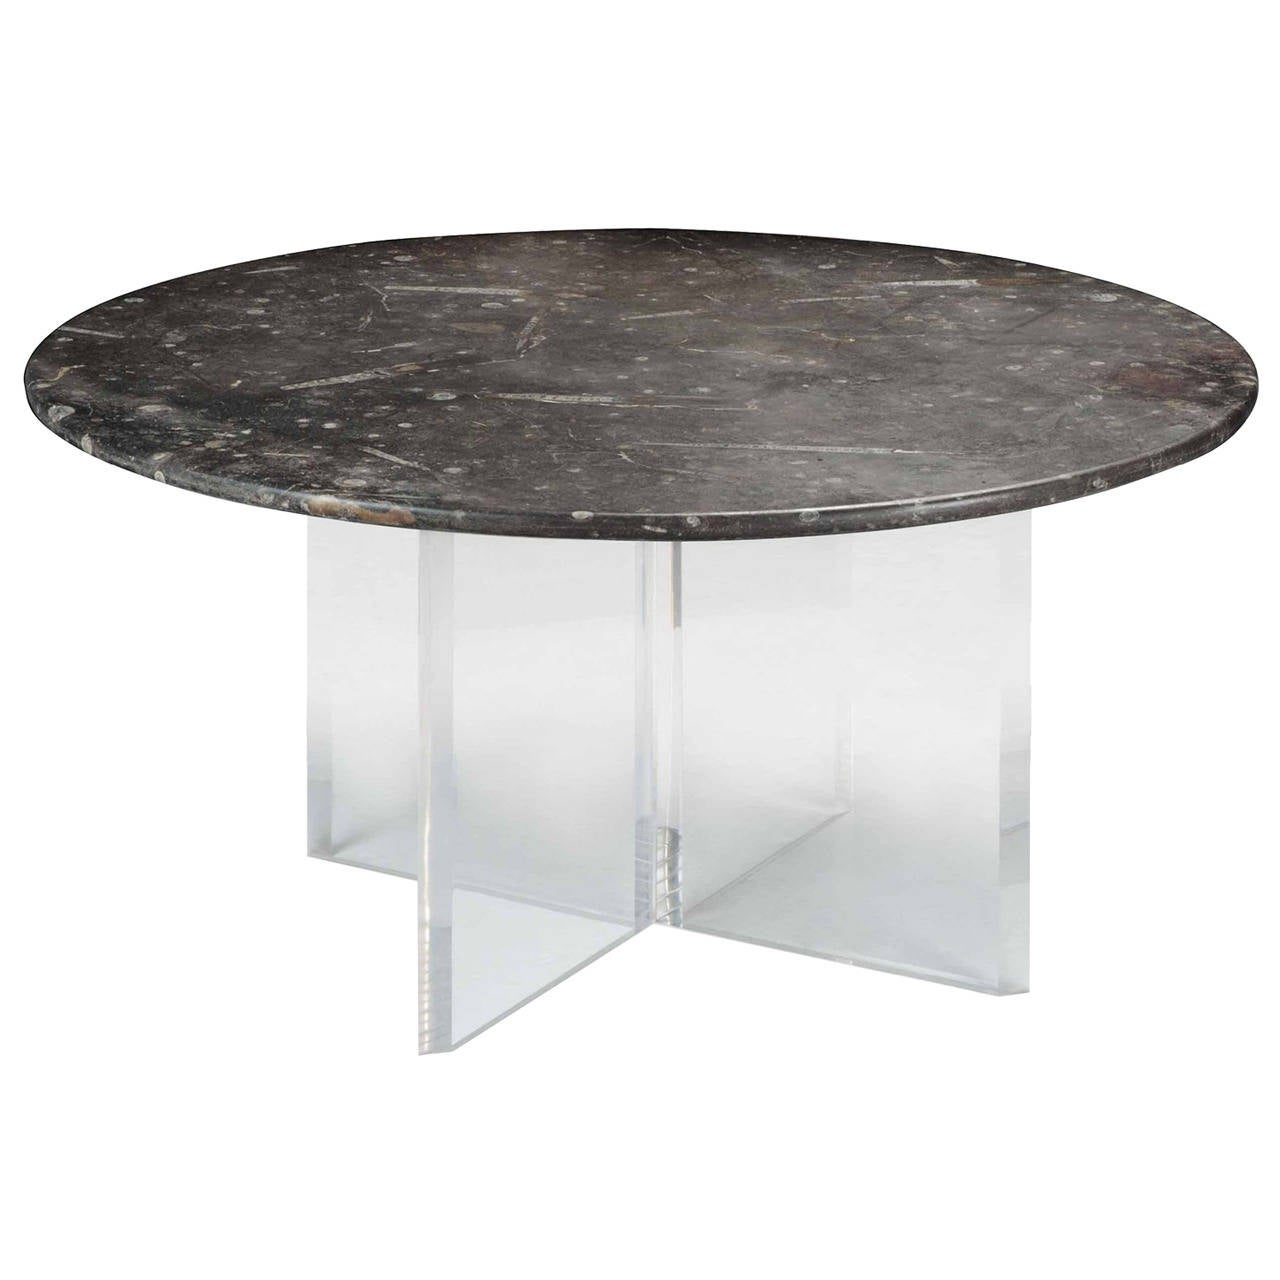 Exceptional Large 19th Century Marble Table Top